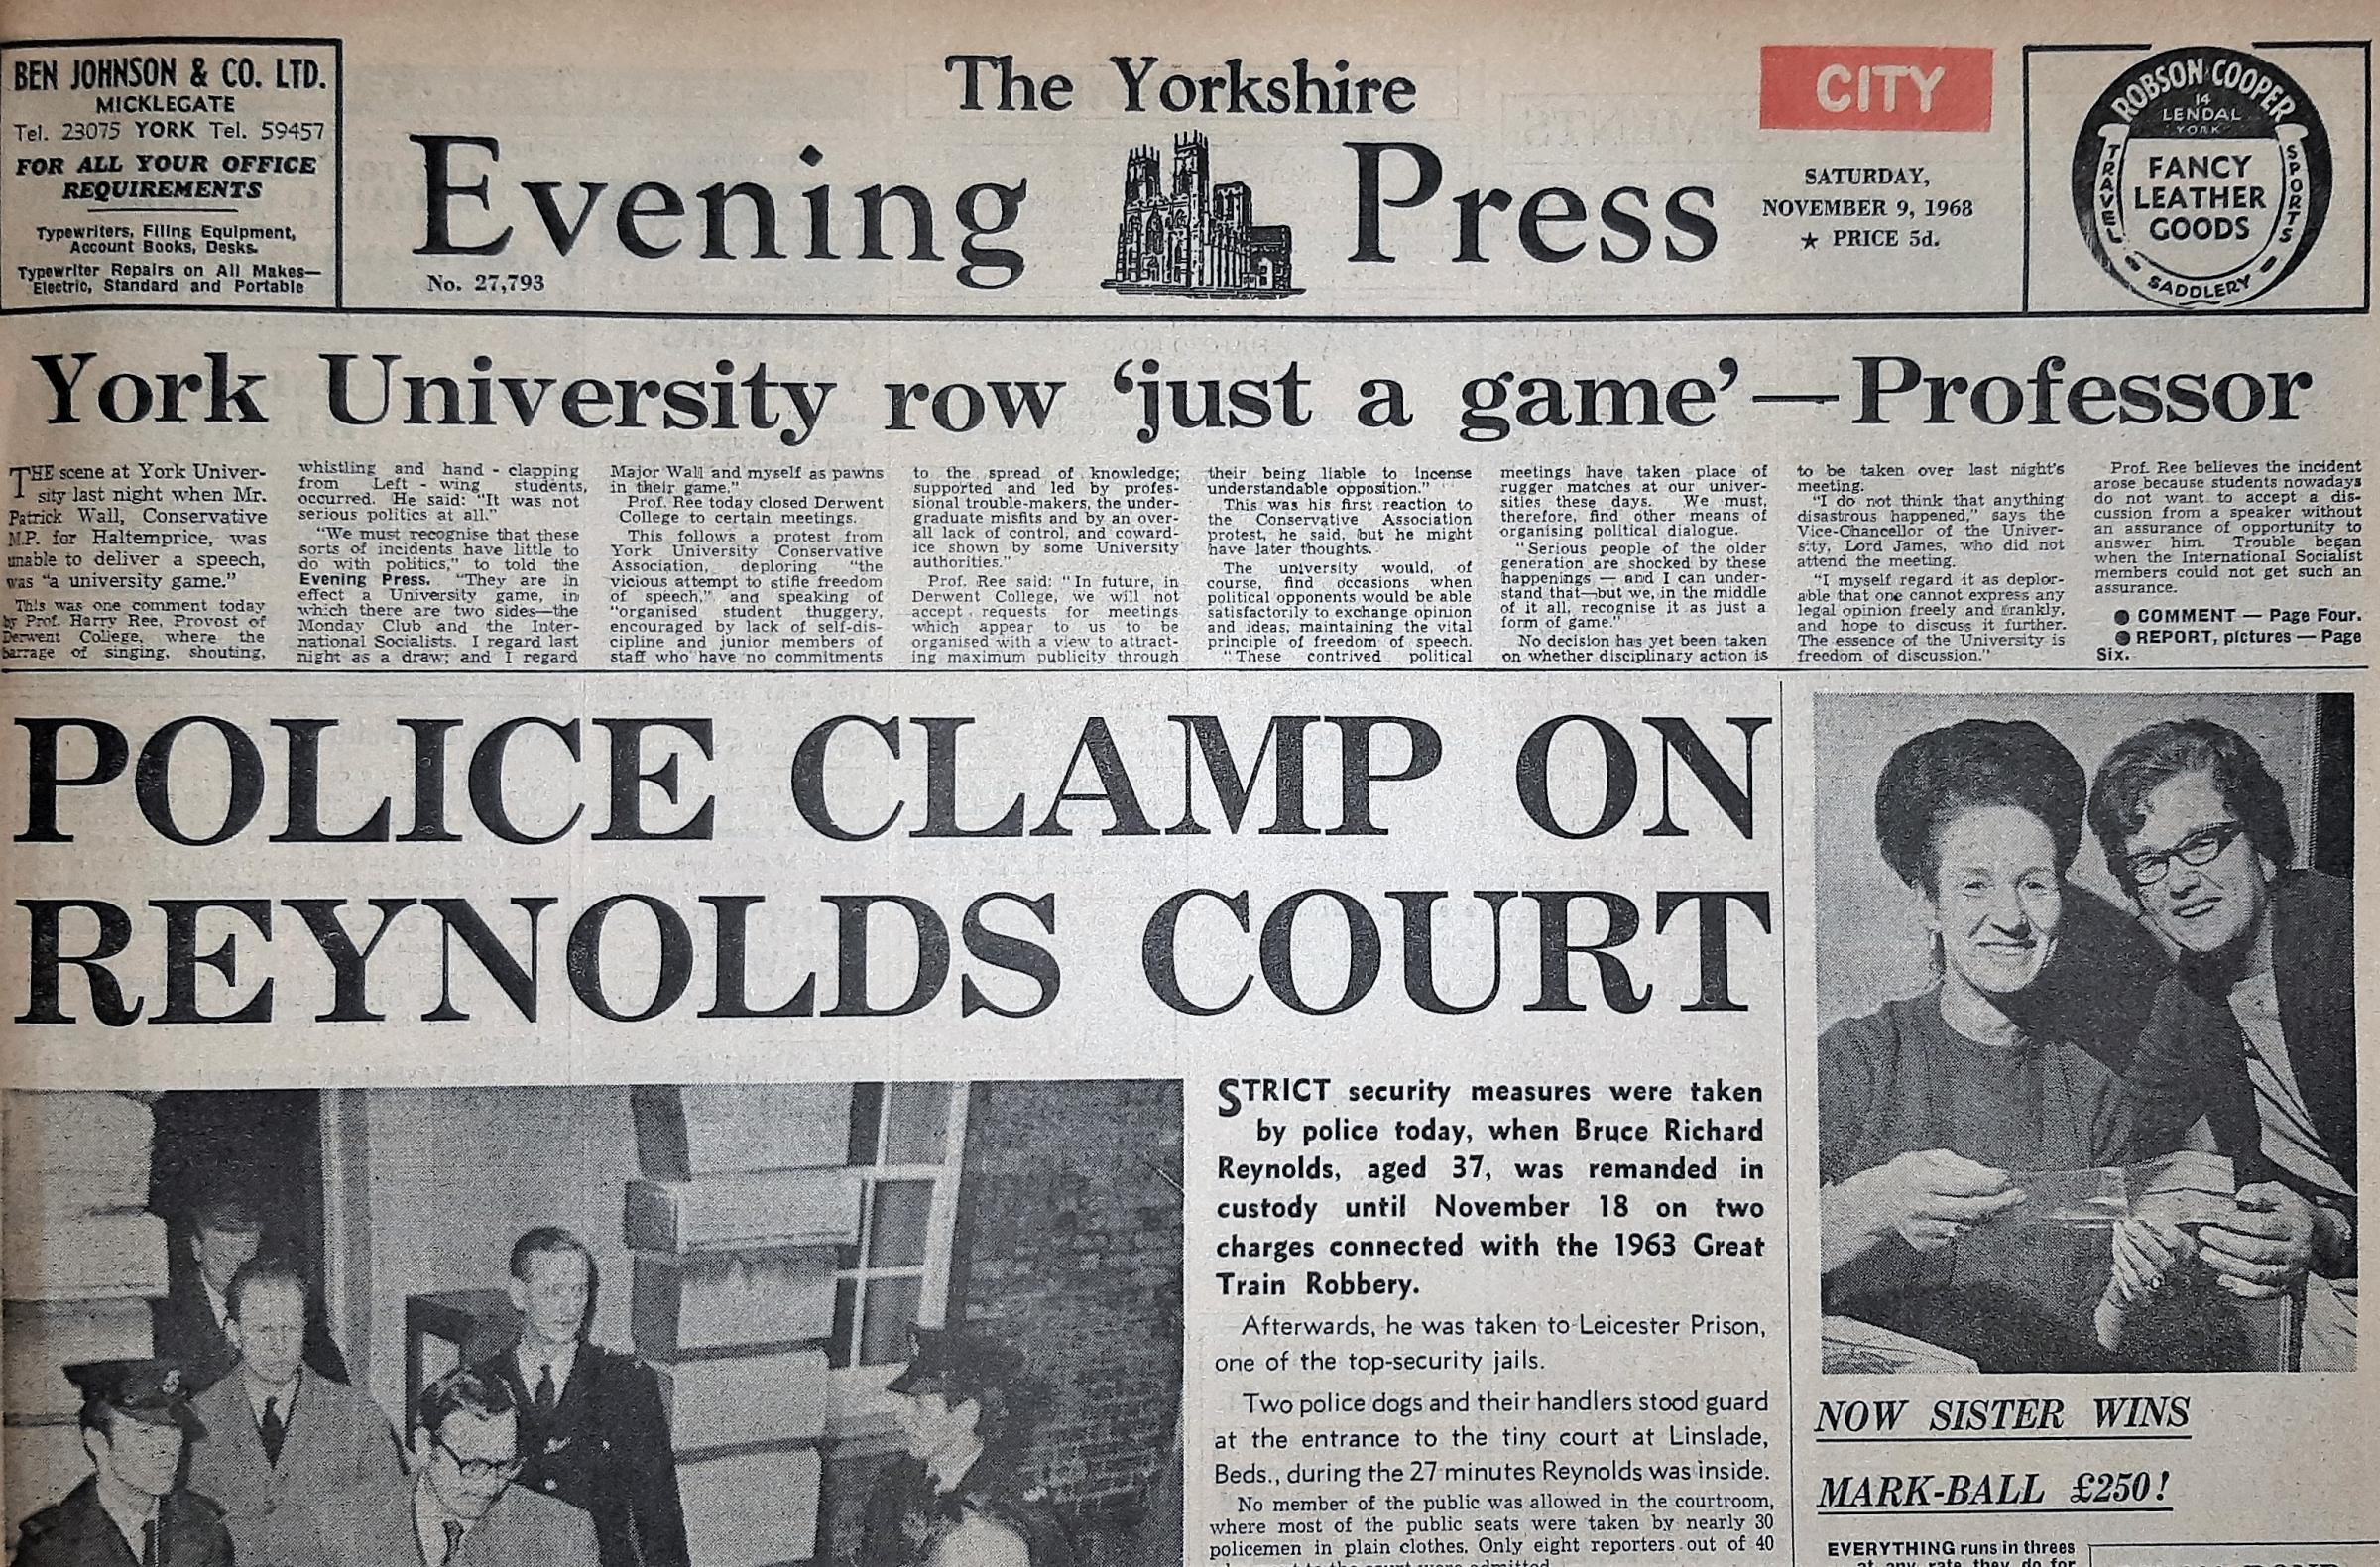 The front page of the Yorkshire Evening Press from November 9, 1968